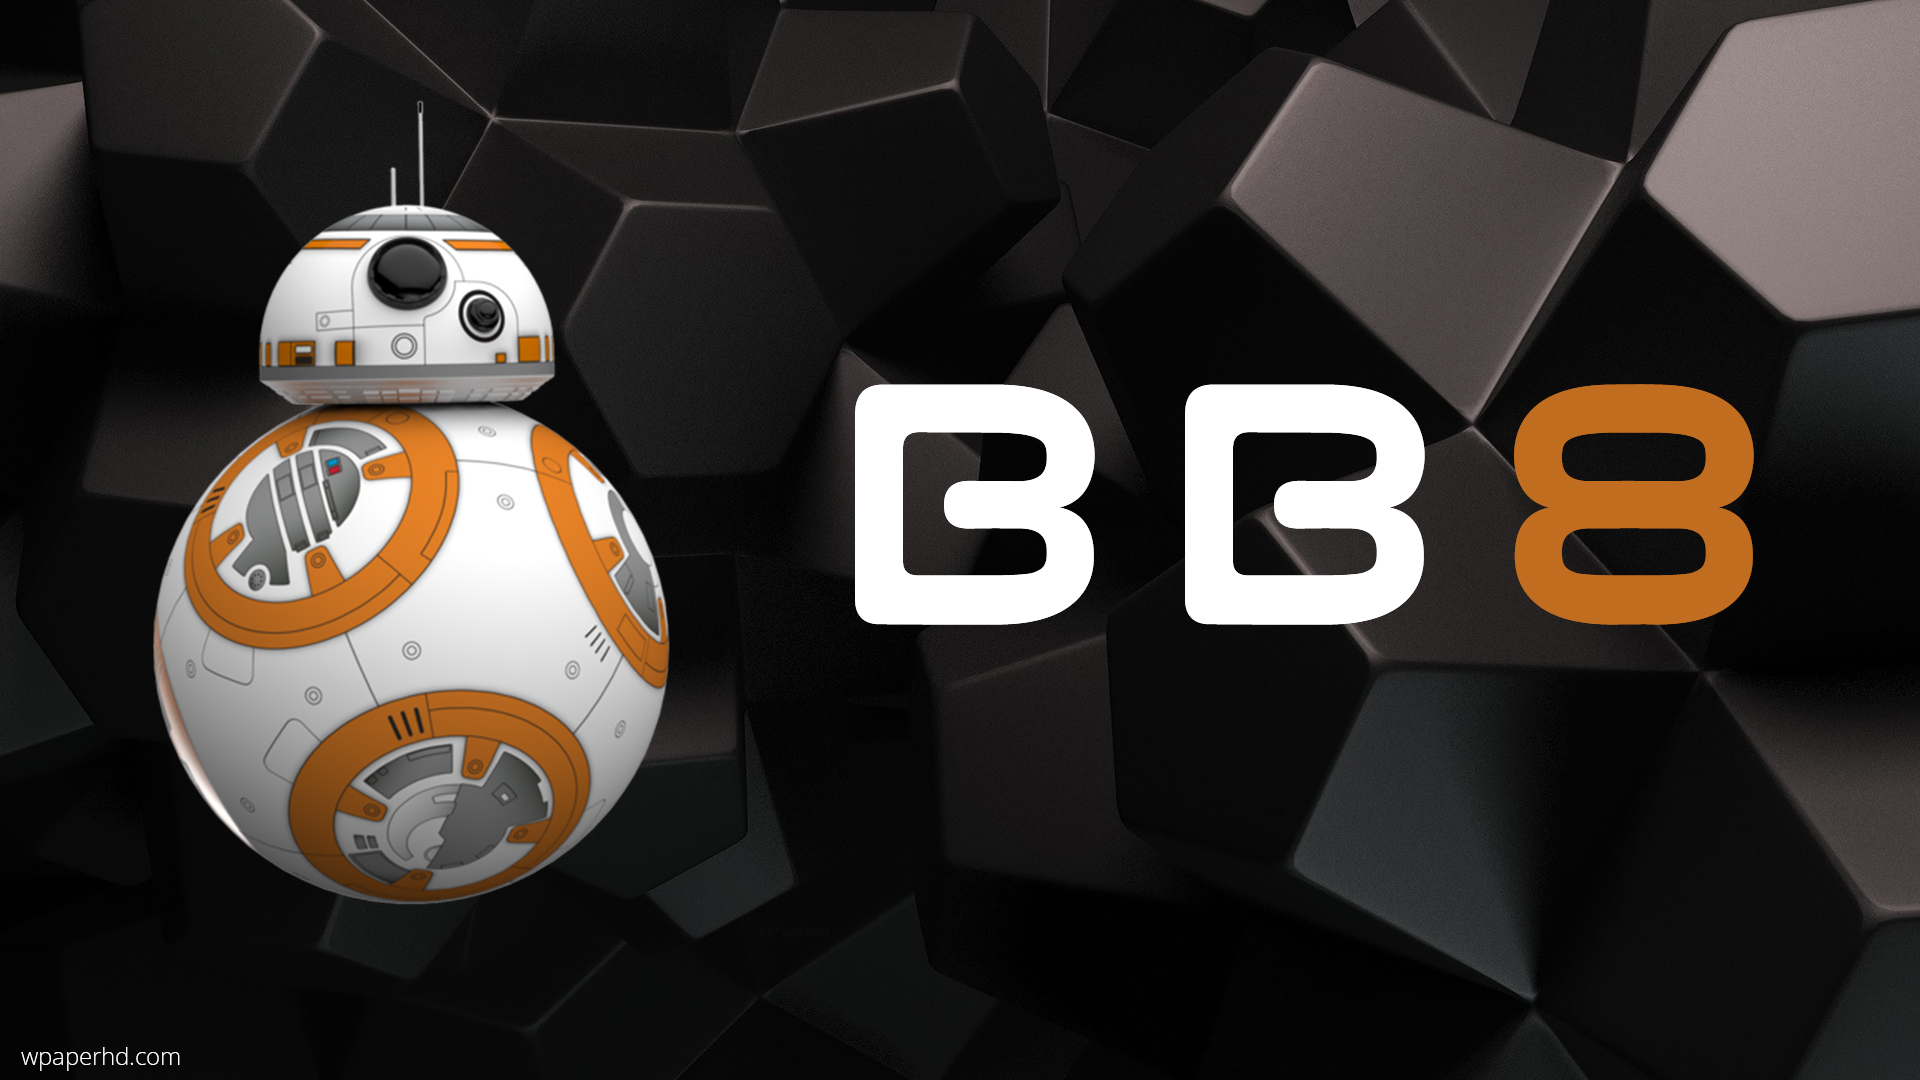 bb8 wallpaper hd - photo #2